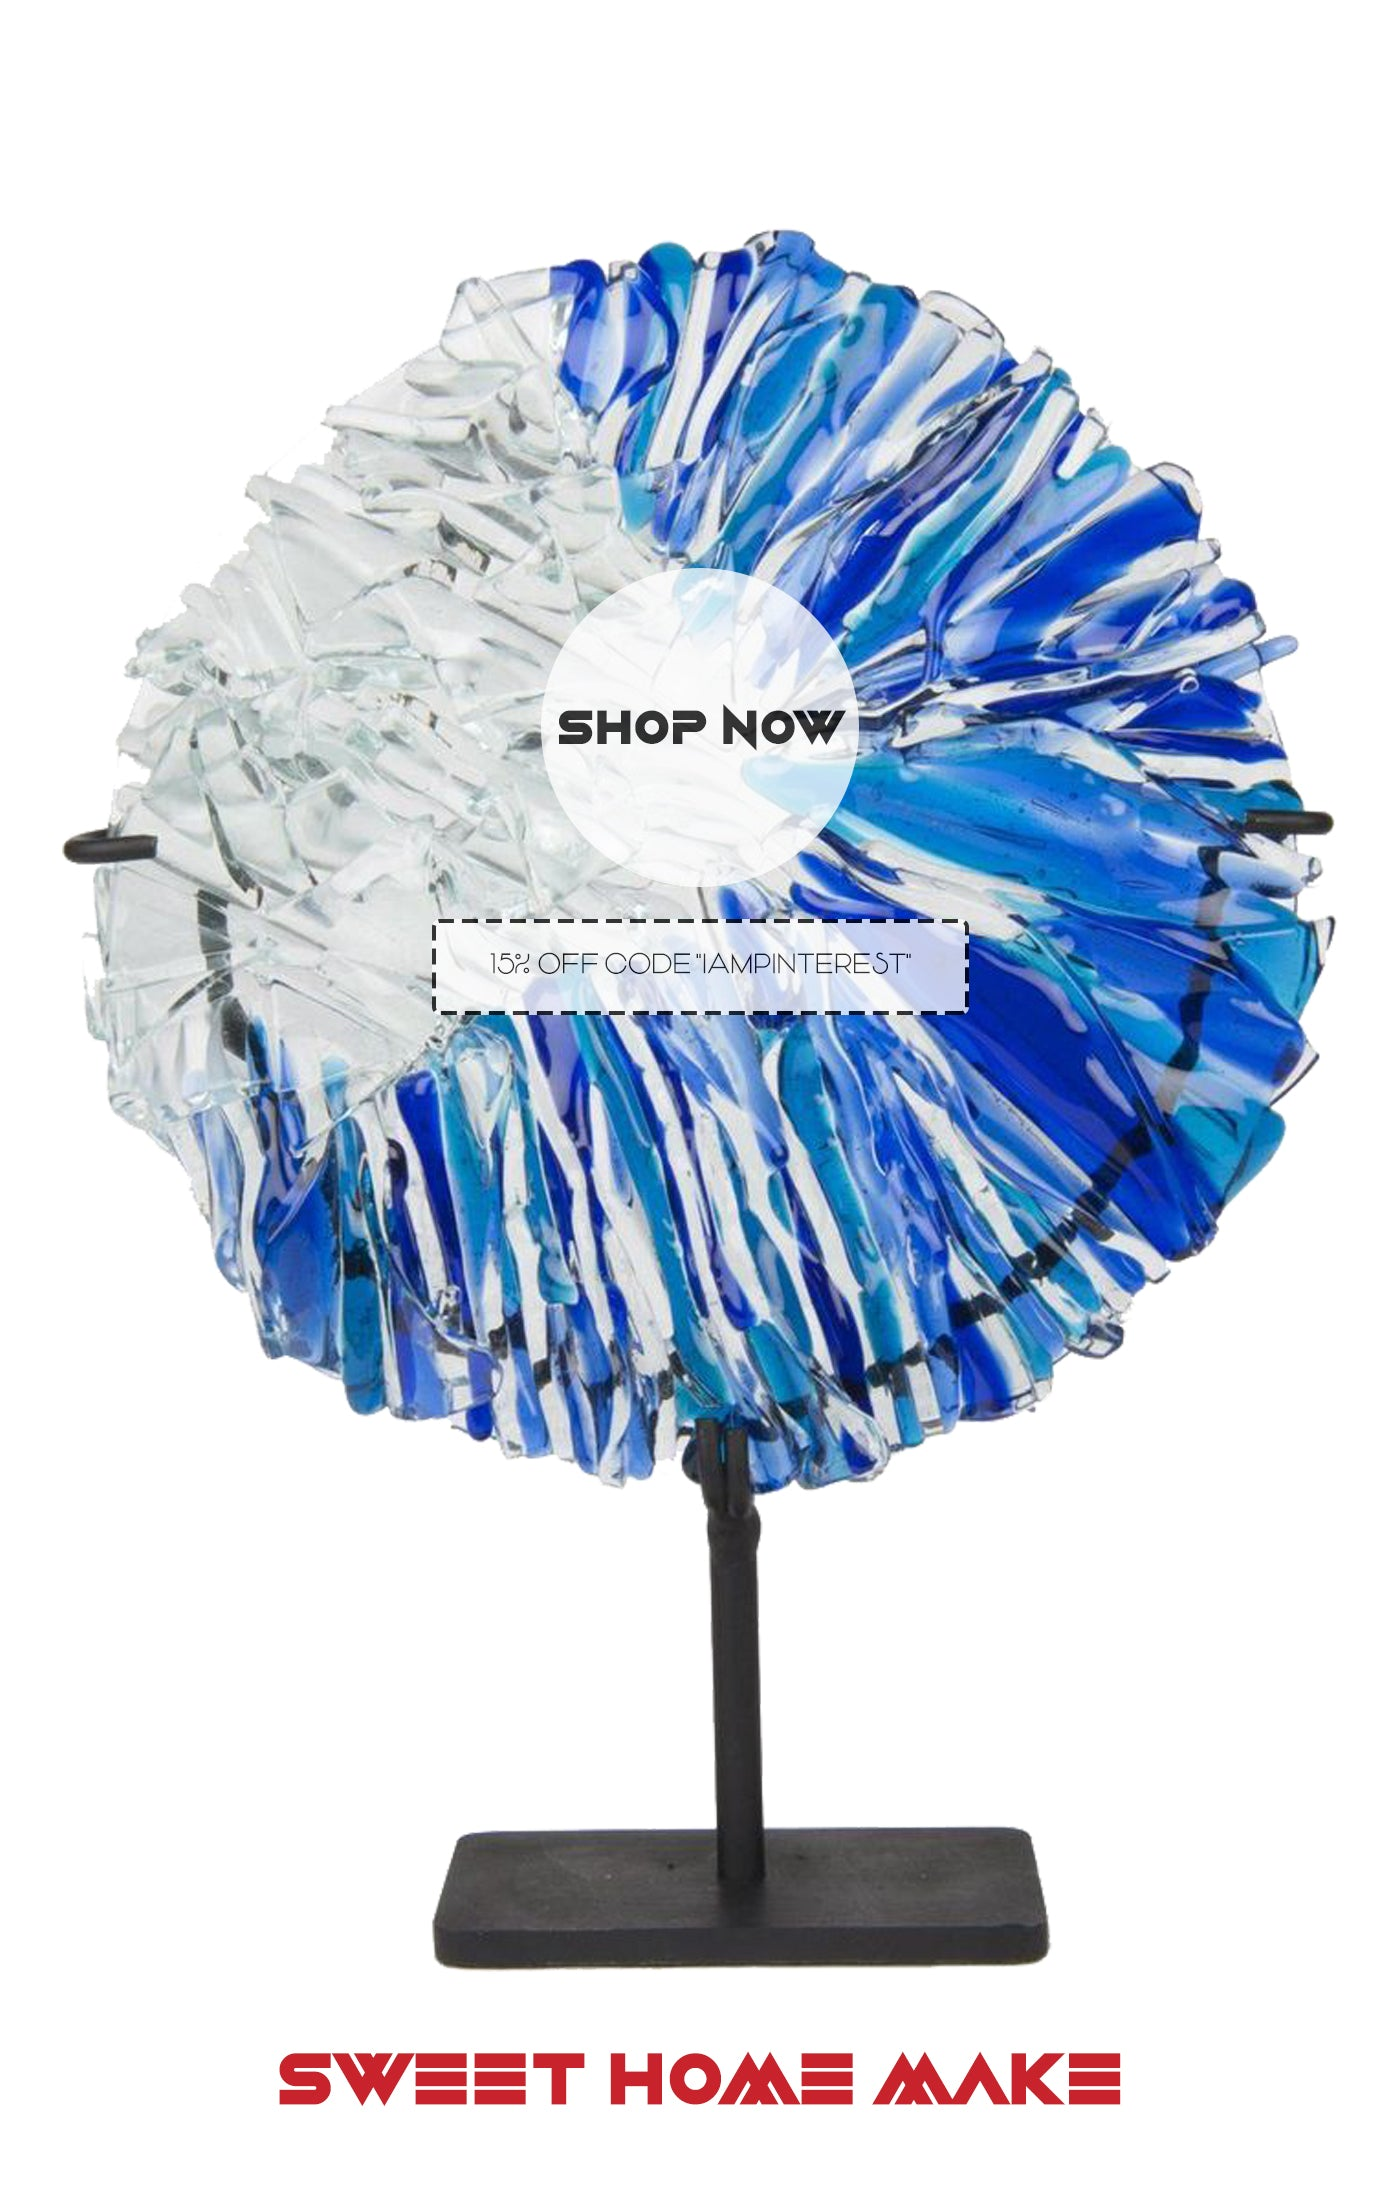 Glass Sculpture as Home Decor Store